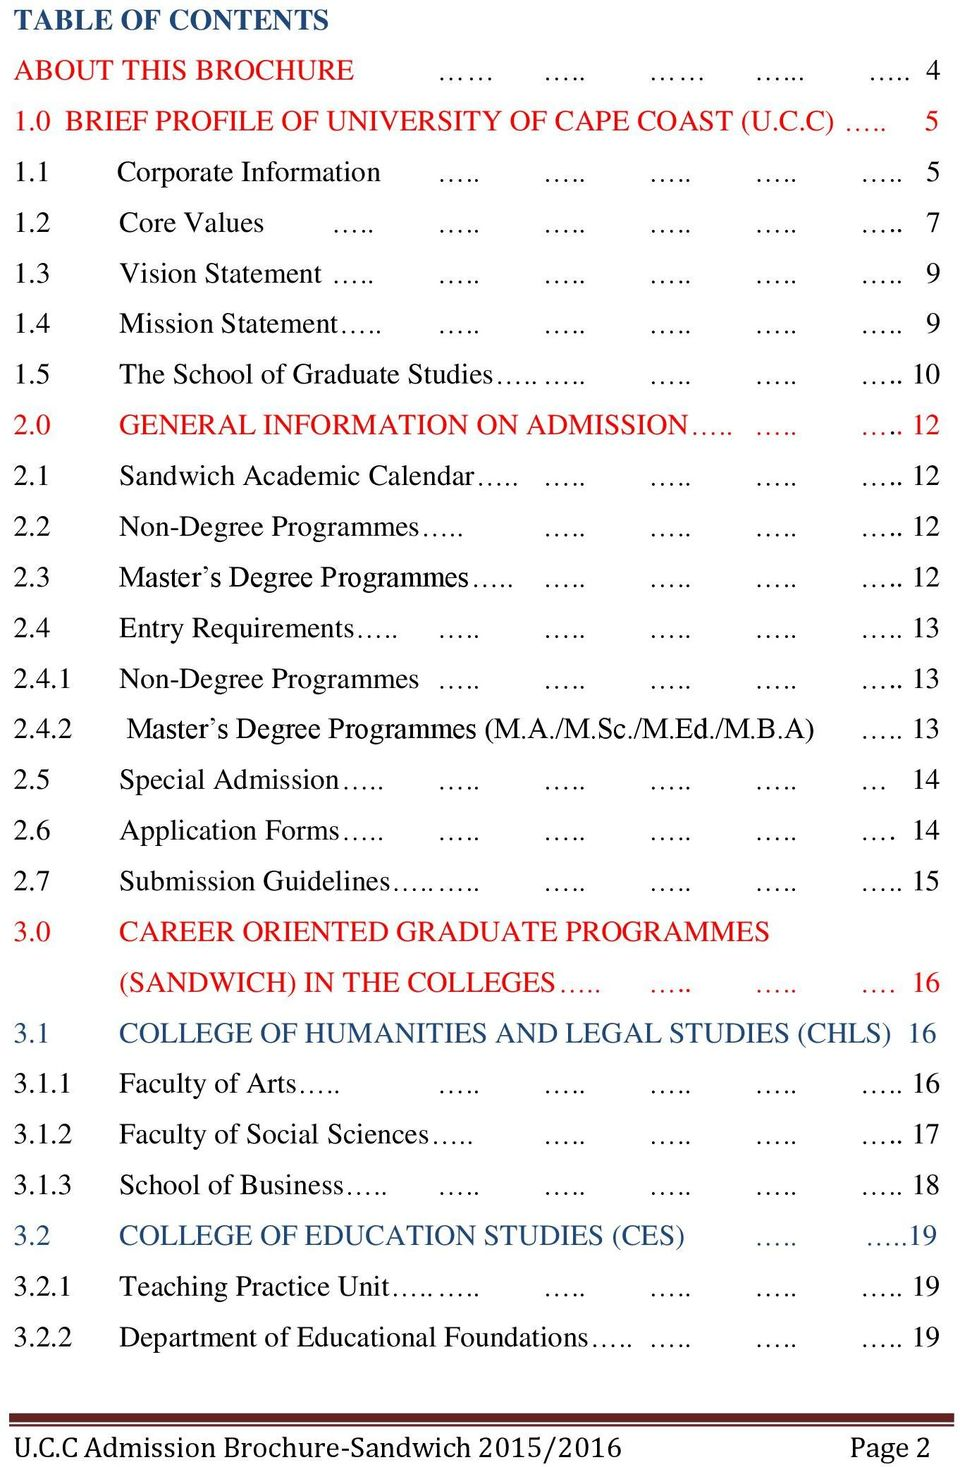 ......... 12 2.3 Master s Degree Programmes.......... 12 2.4 Entry Requirements............ 13 2.4.1 Non-Degree Programmes.......... 13 2.4.2 Master s Degree Programmes (M.A./M.Sc./M.Ed./M.B.A).. 13 2.5 Special Admission.